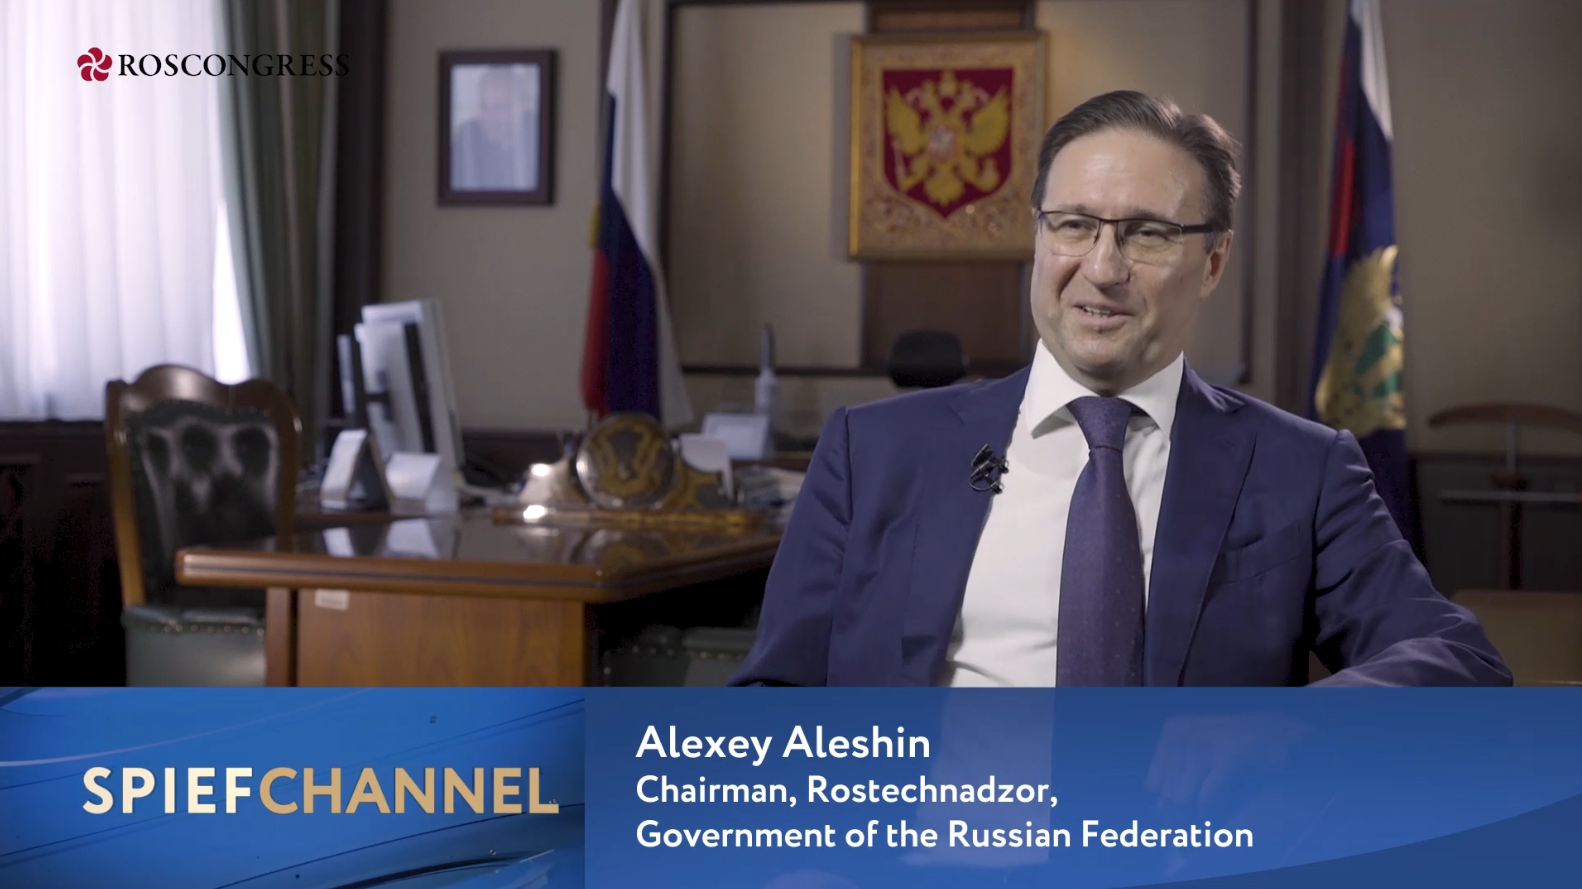 Alexey Aleshin, Chairman, Rostechnadzor, Government of the Russian Federation